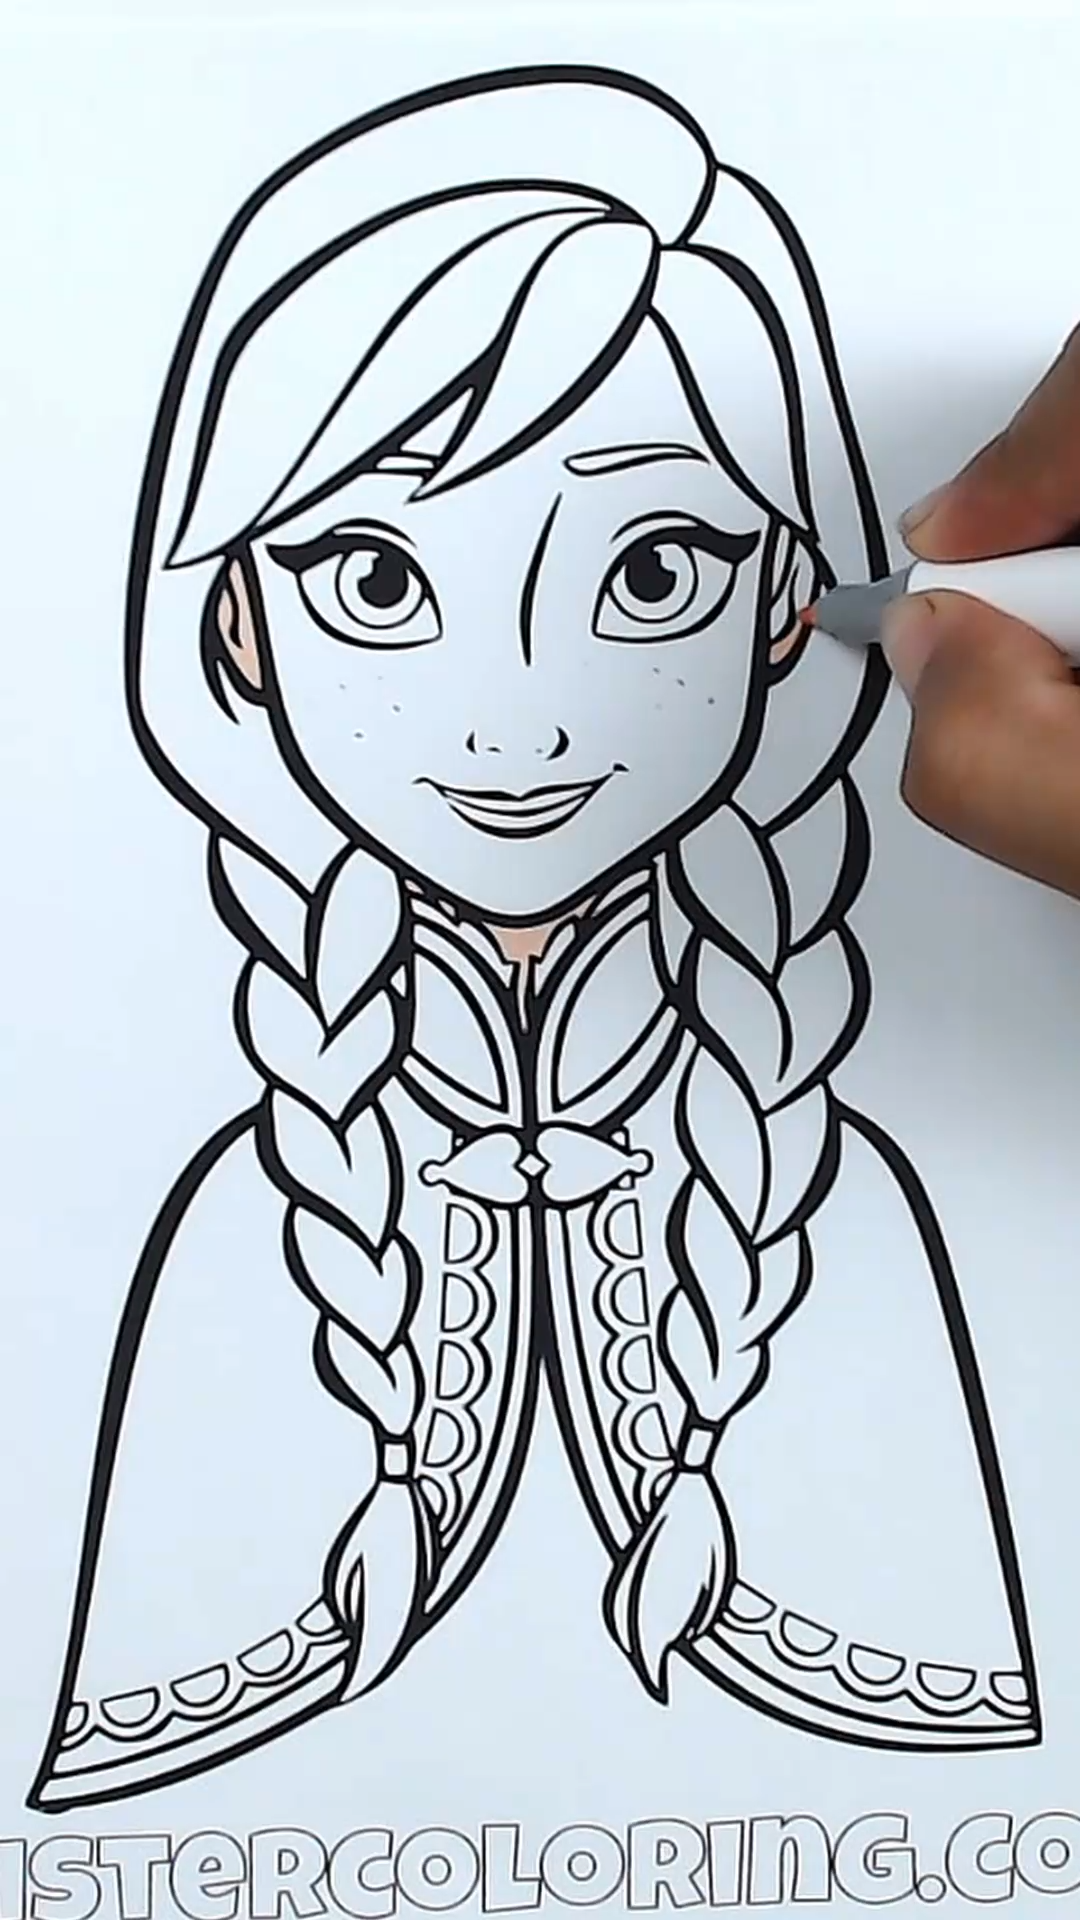 Today We Will Coloring Princess Anna Of Arendelle From Walt Disney Frozen 2 Movie Free C Coloring Pages Disney Princess Coloring Pages Toy Story Coloring Pages